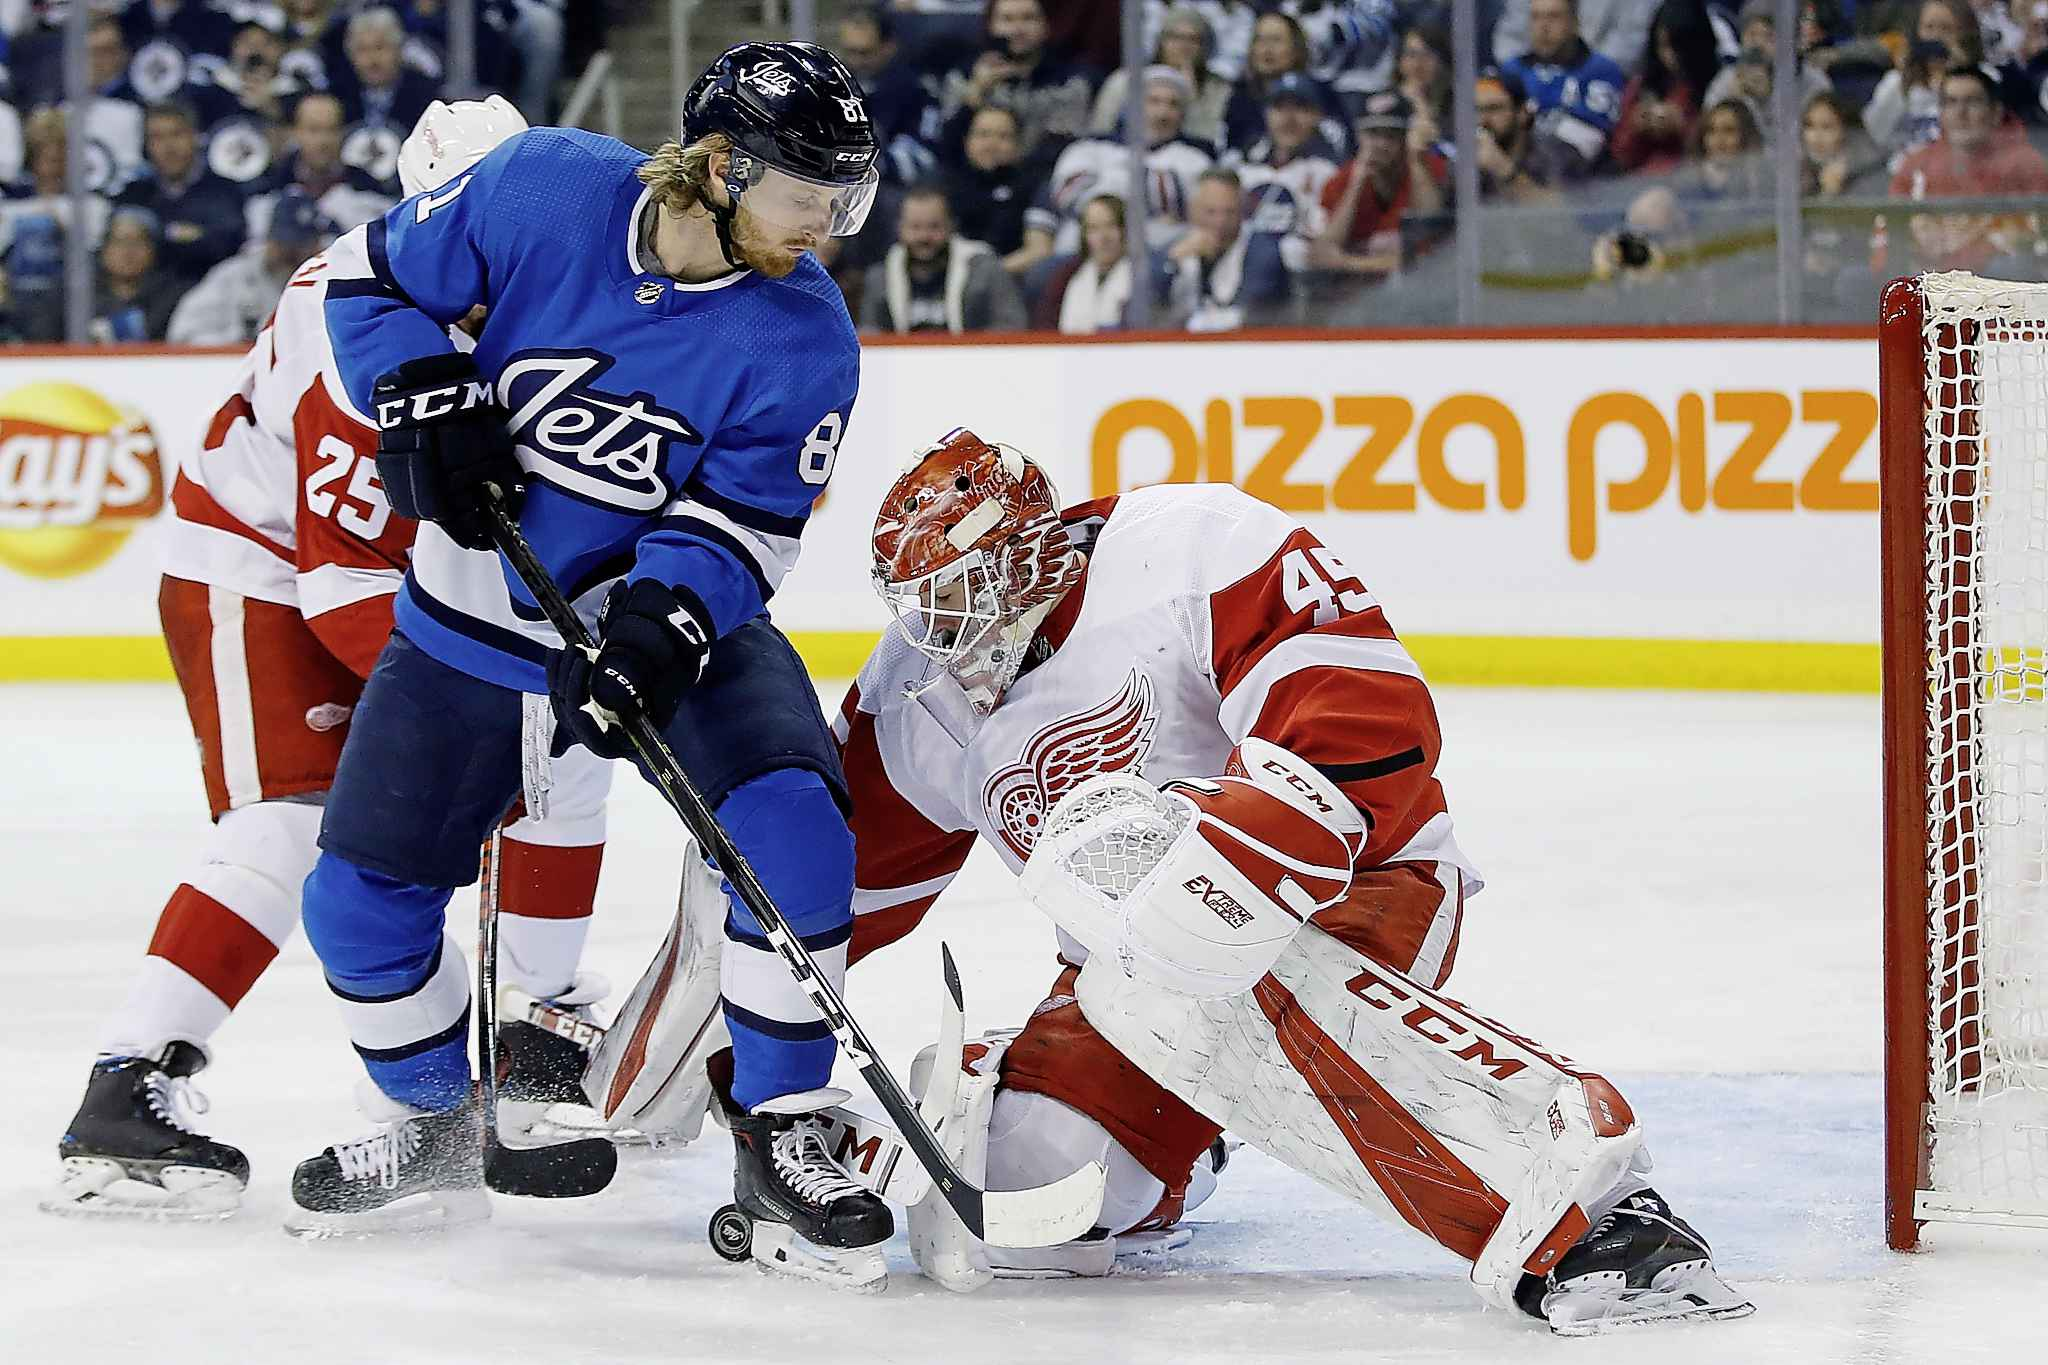 Detroit Red Wings goaltender Jonathan Bernier jumps on a loose puck as Winnipeg Jets' Kyle Connor applies pressure and Wings' Mike Green defends during the second period Friday.